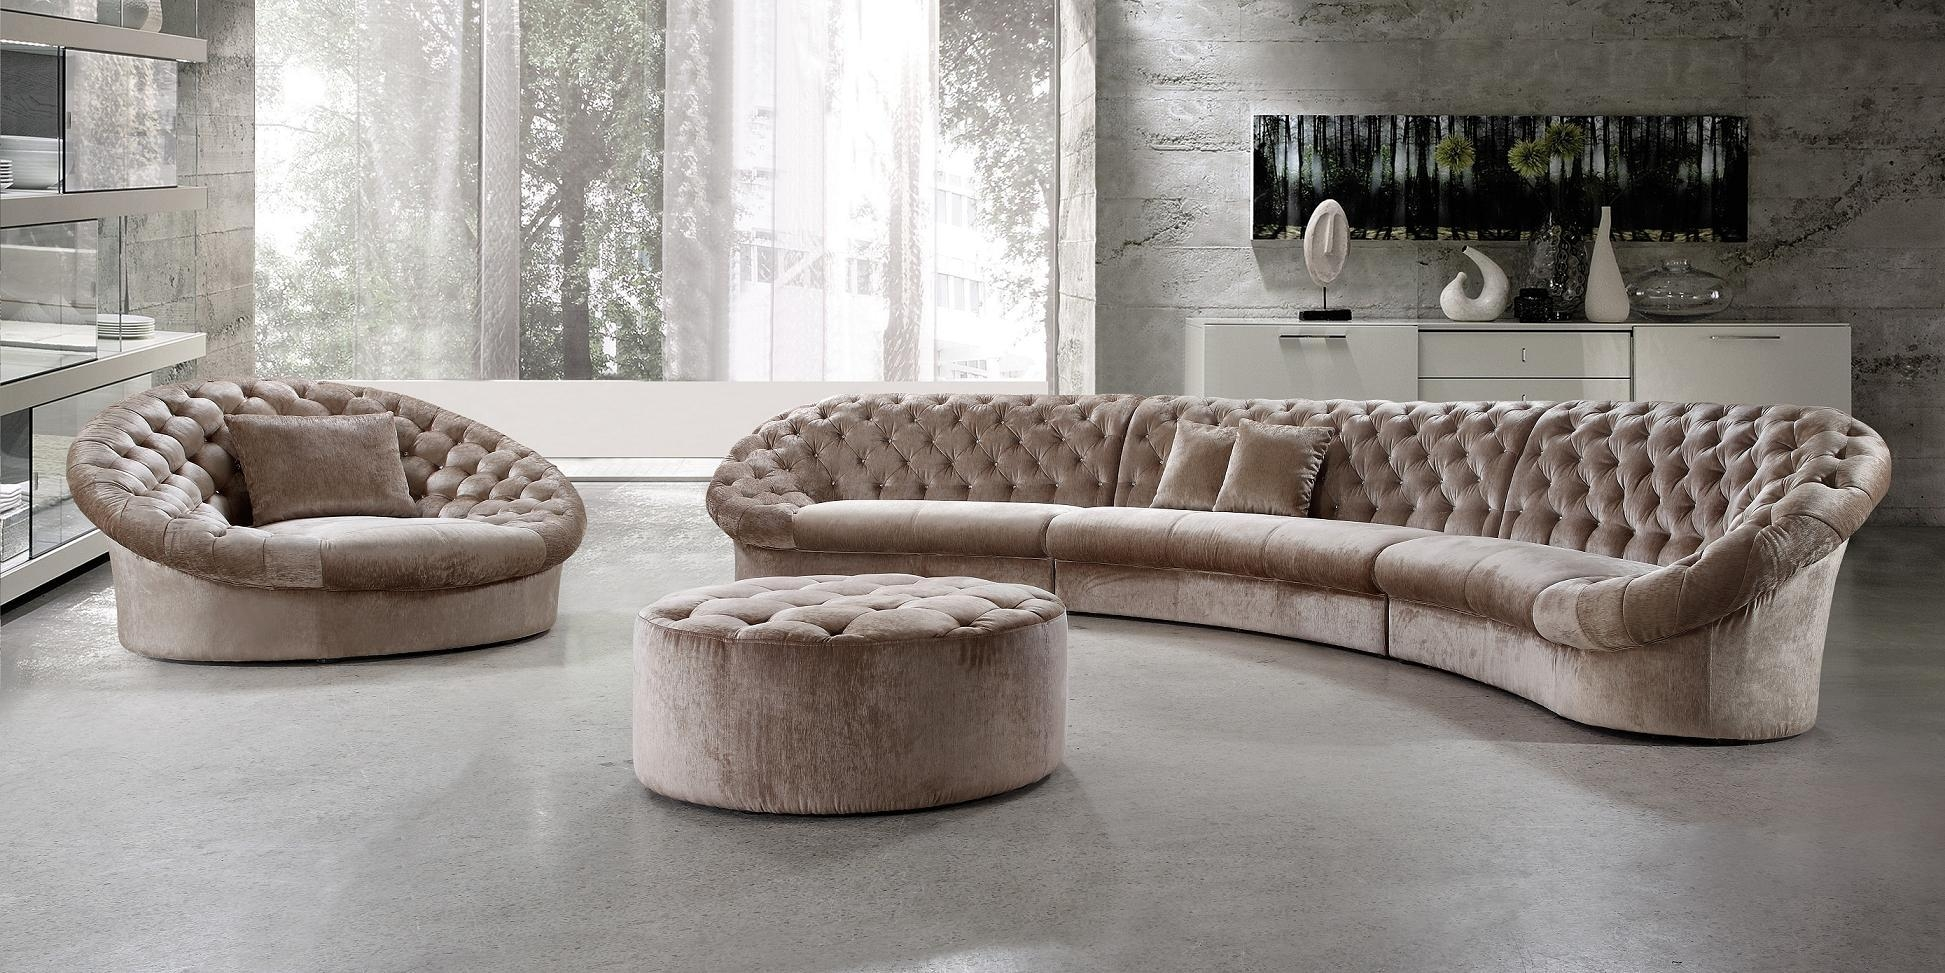 Divani Casa Cosmopolitan Sectional Sofa Chair And Ottoman Buy Regarding Sofa Chair And Ottoman (Image 7 of 15)